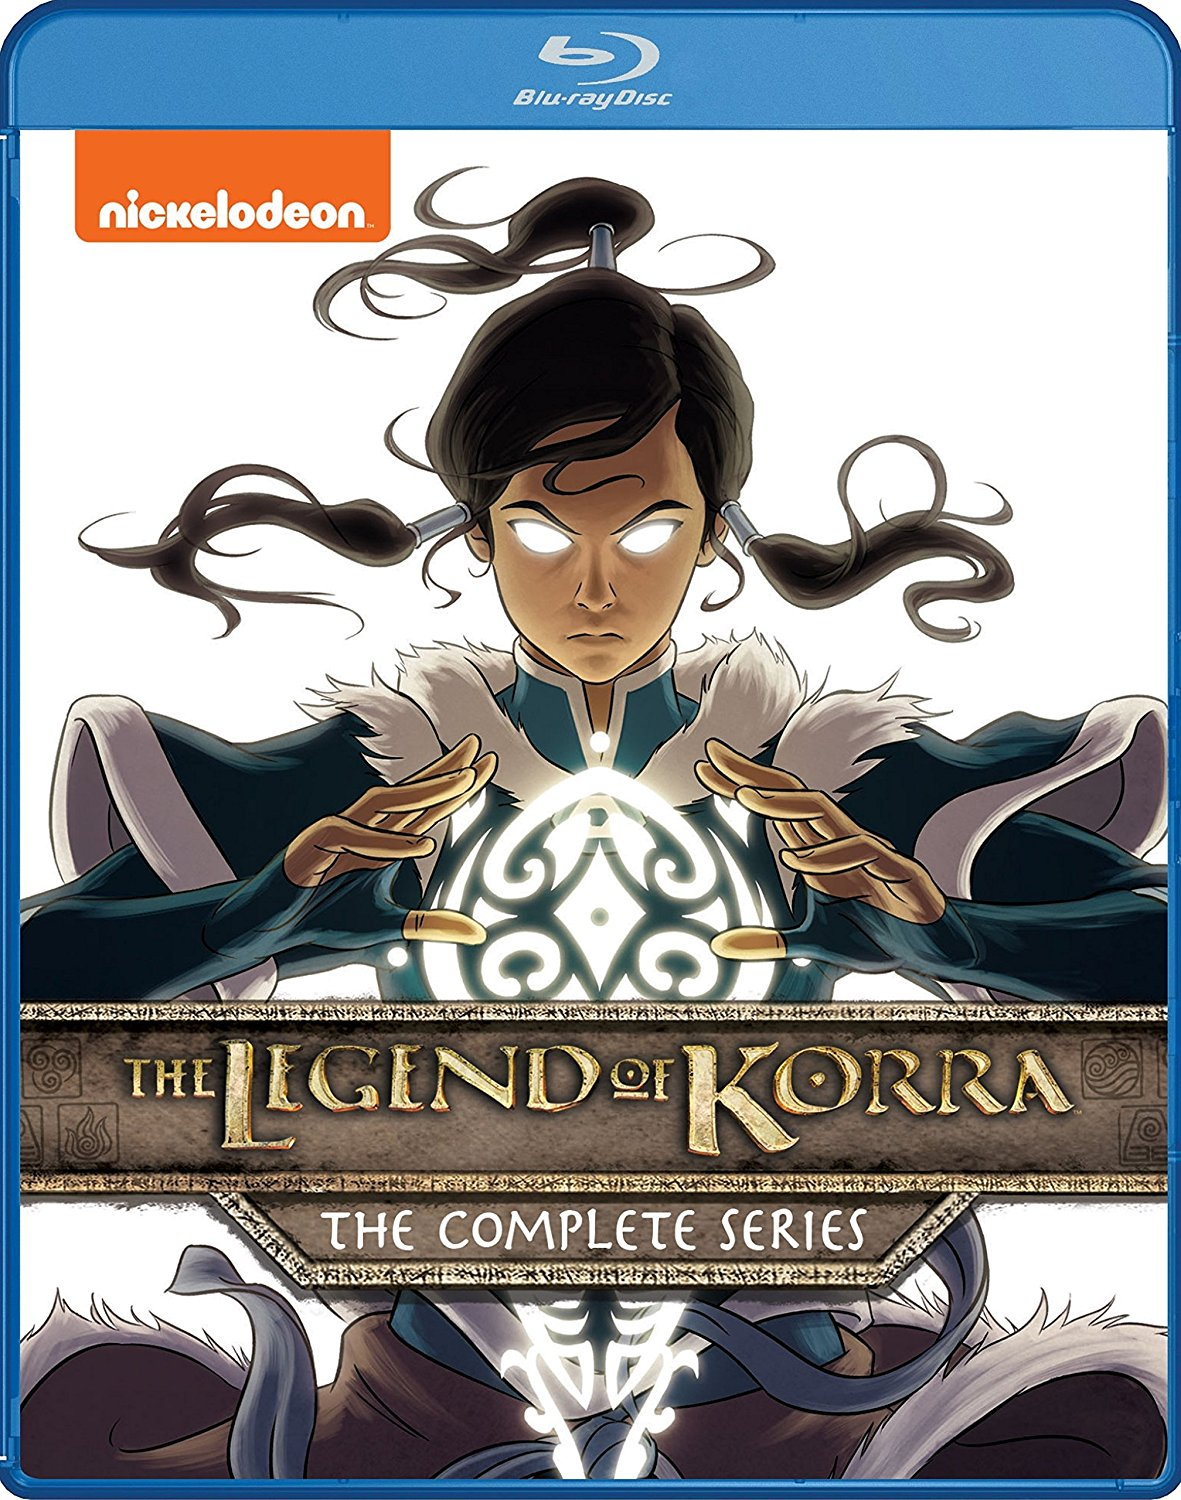 The Legend of Korra Complete Series Blu-ray